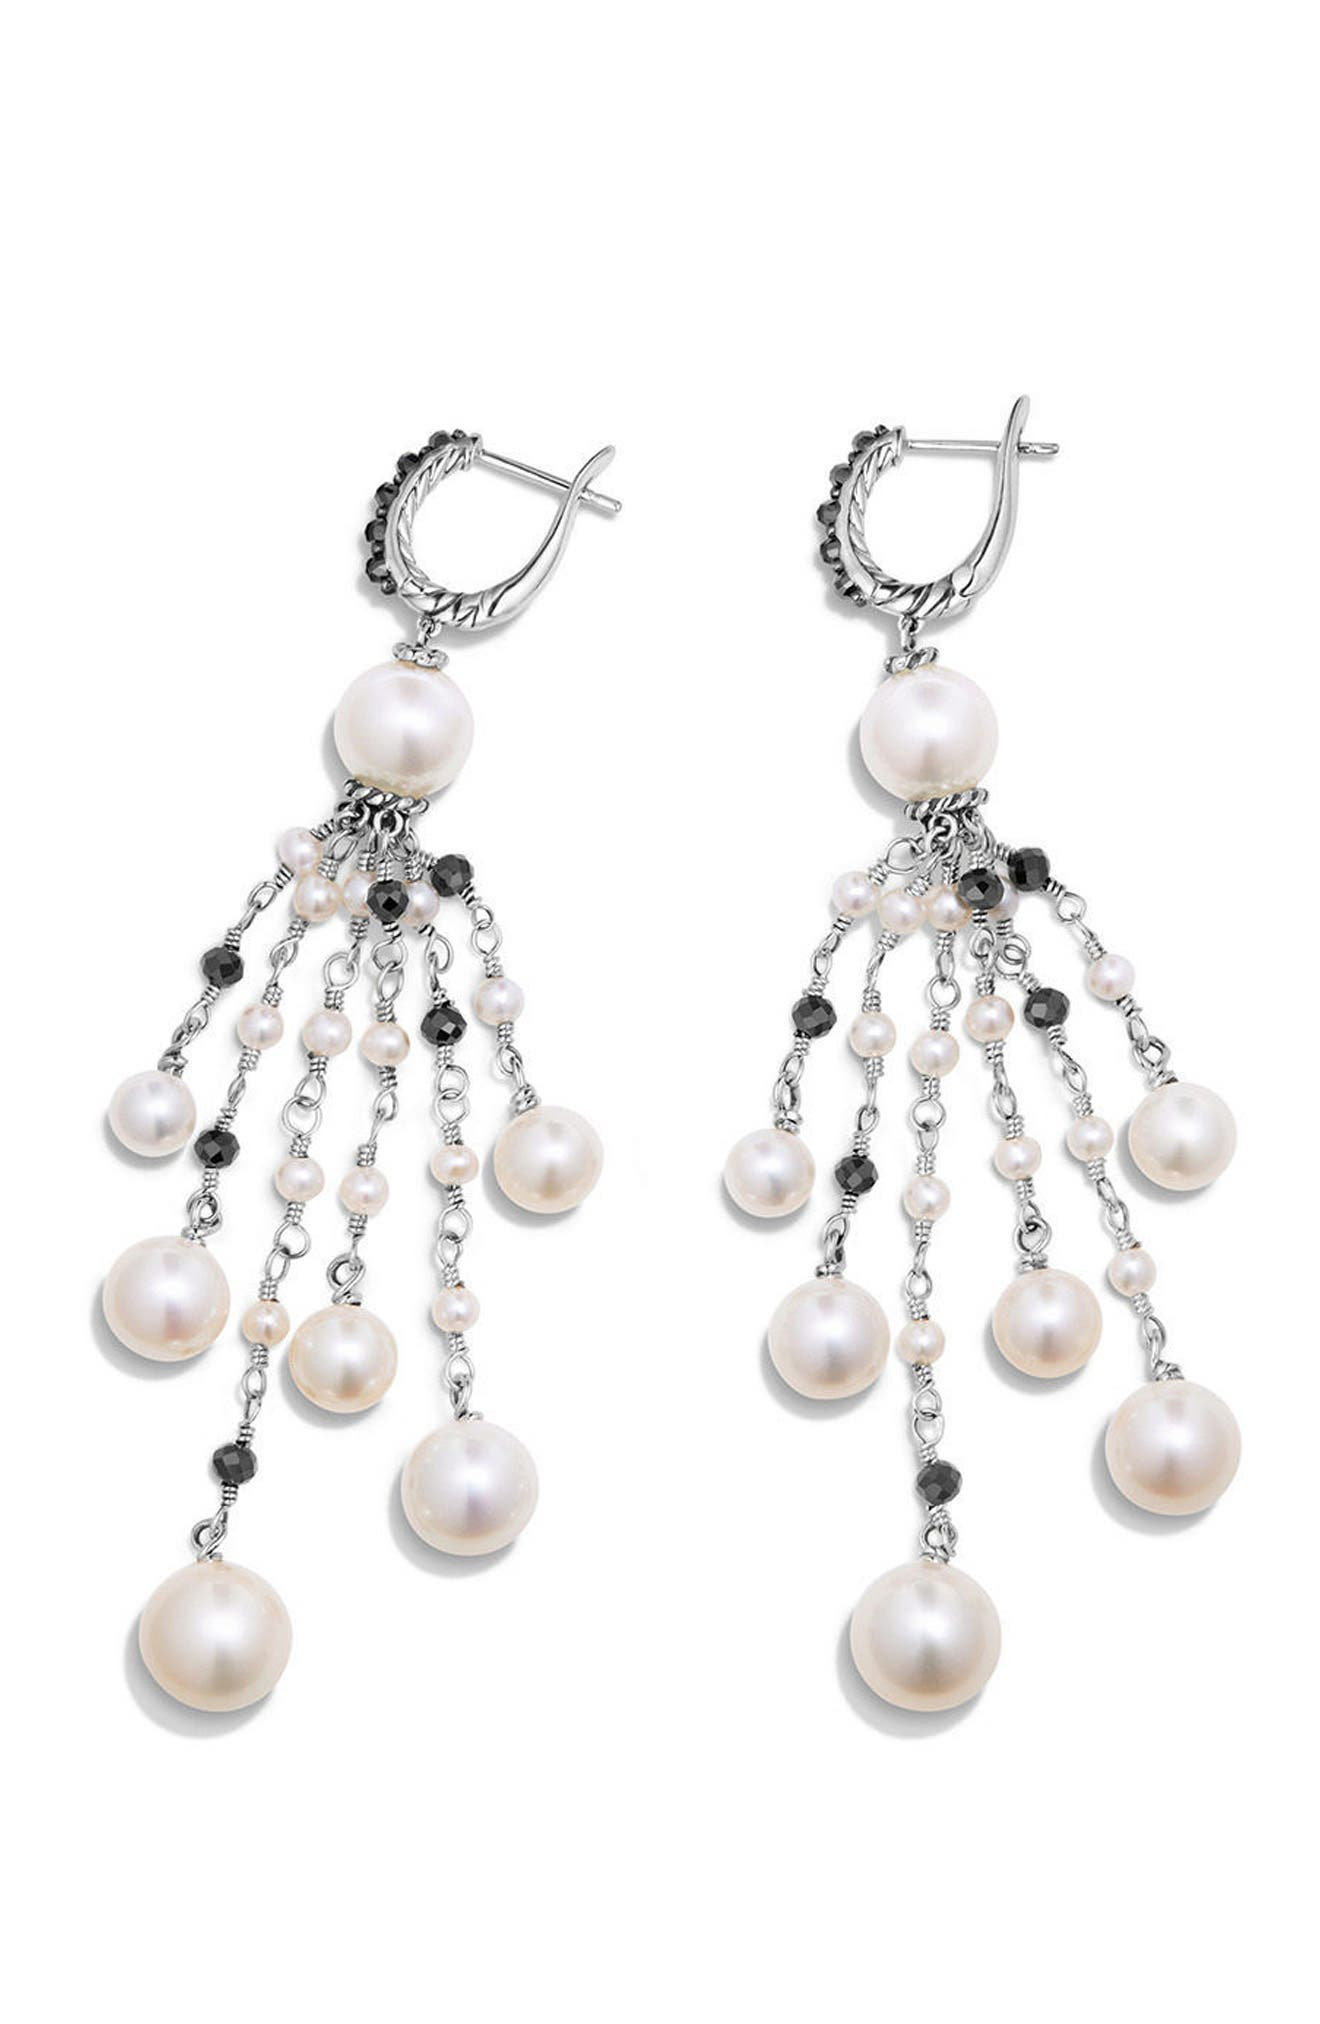 Solari Pearl Fringe Earrings,                             Alternate thumbnail 2, color,                             Pearl/ Black Spinel